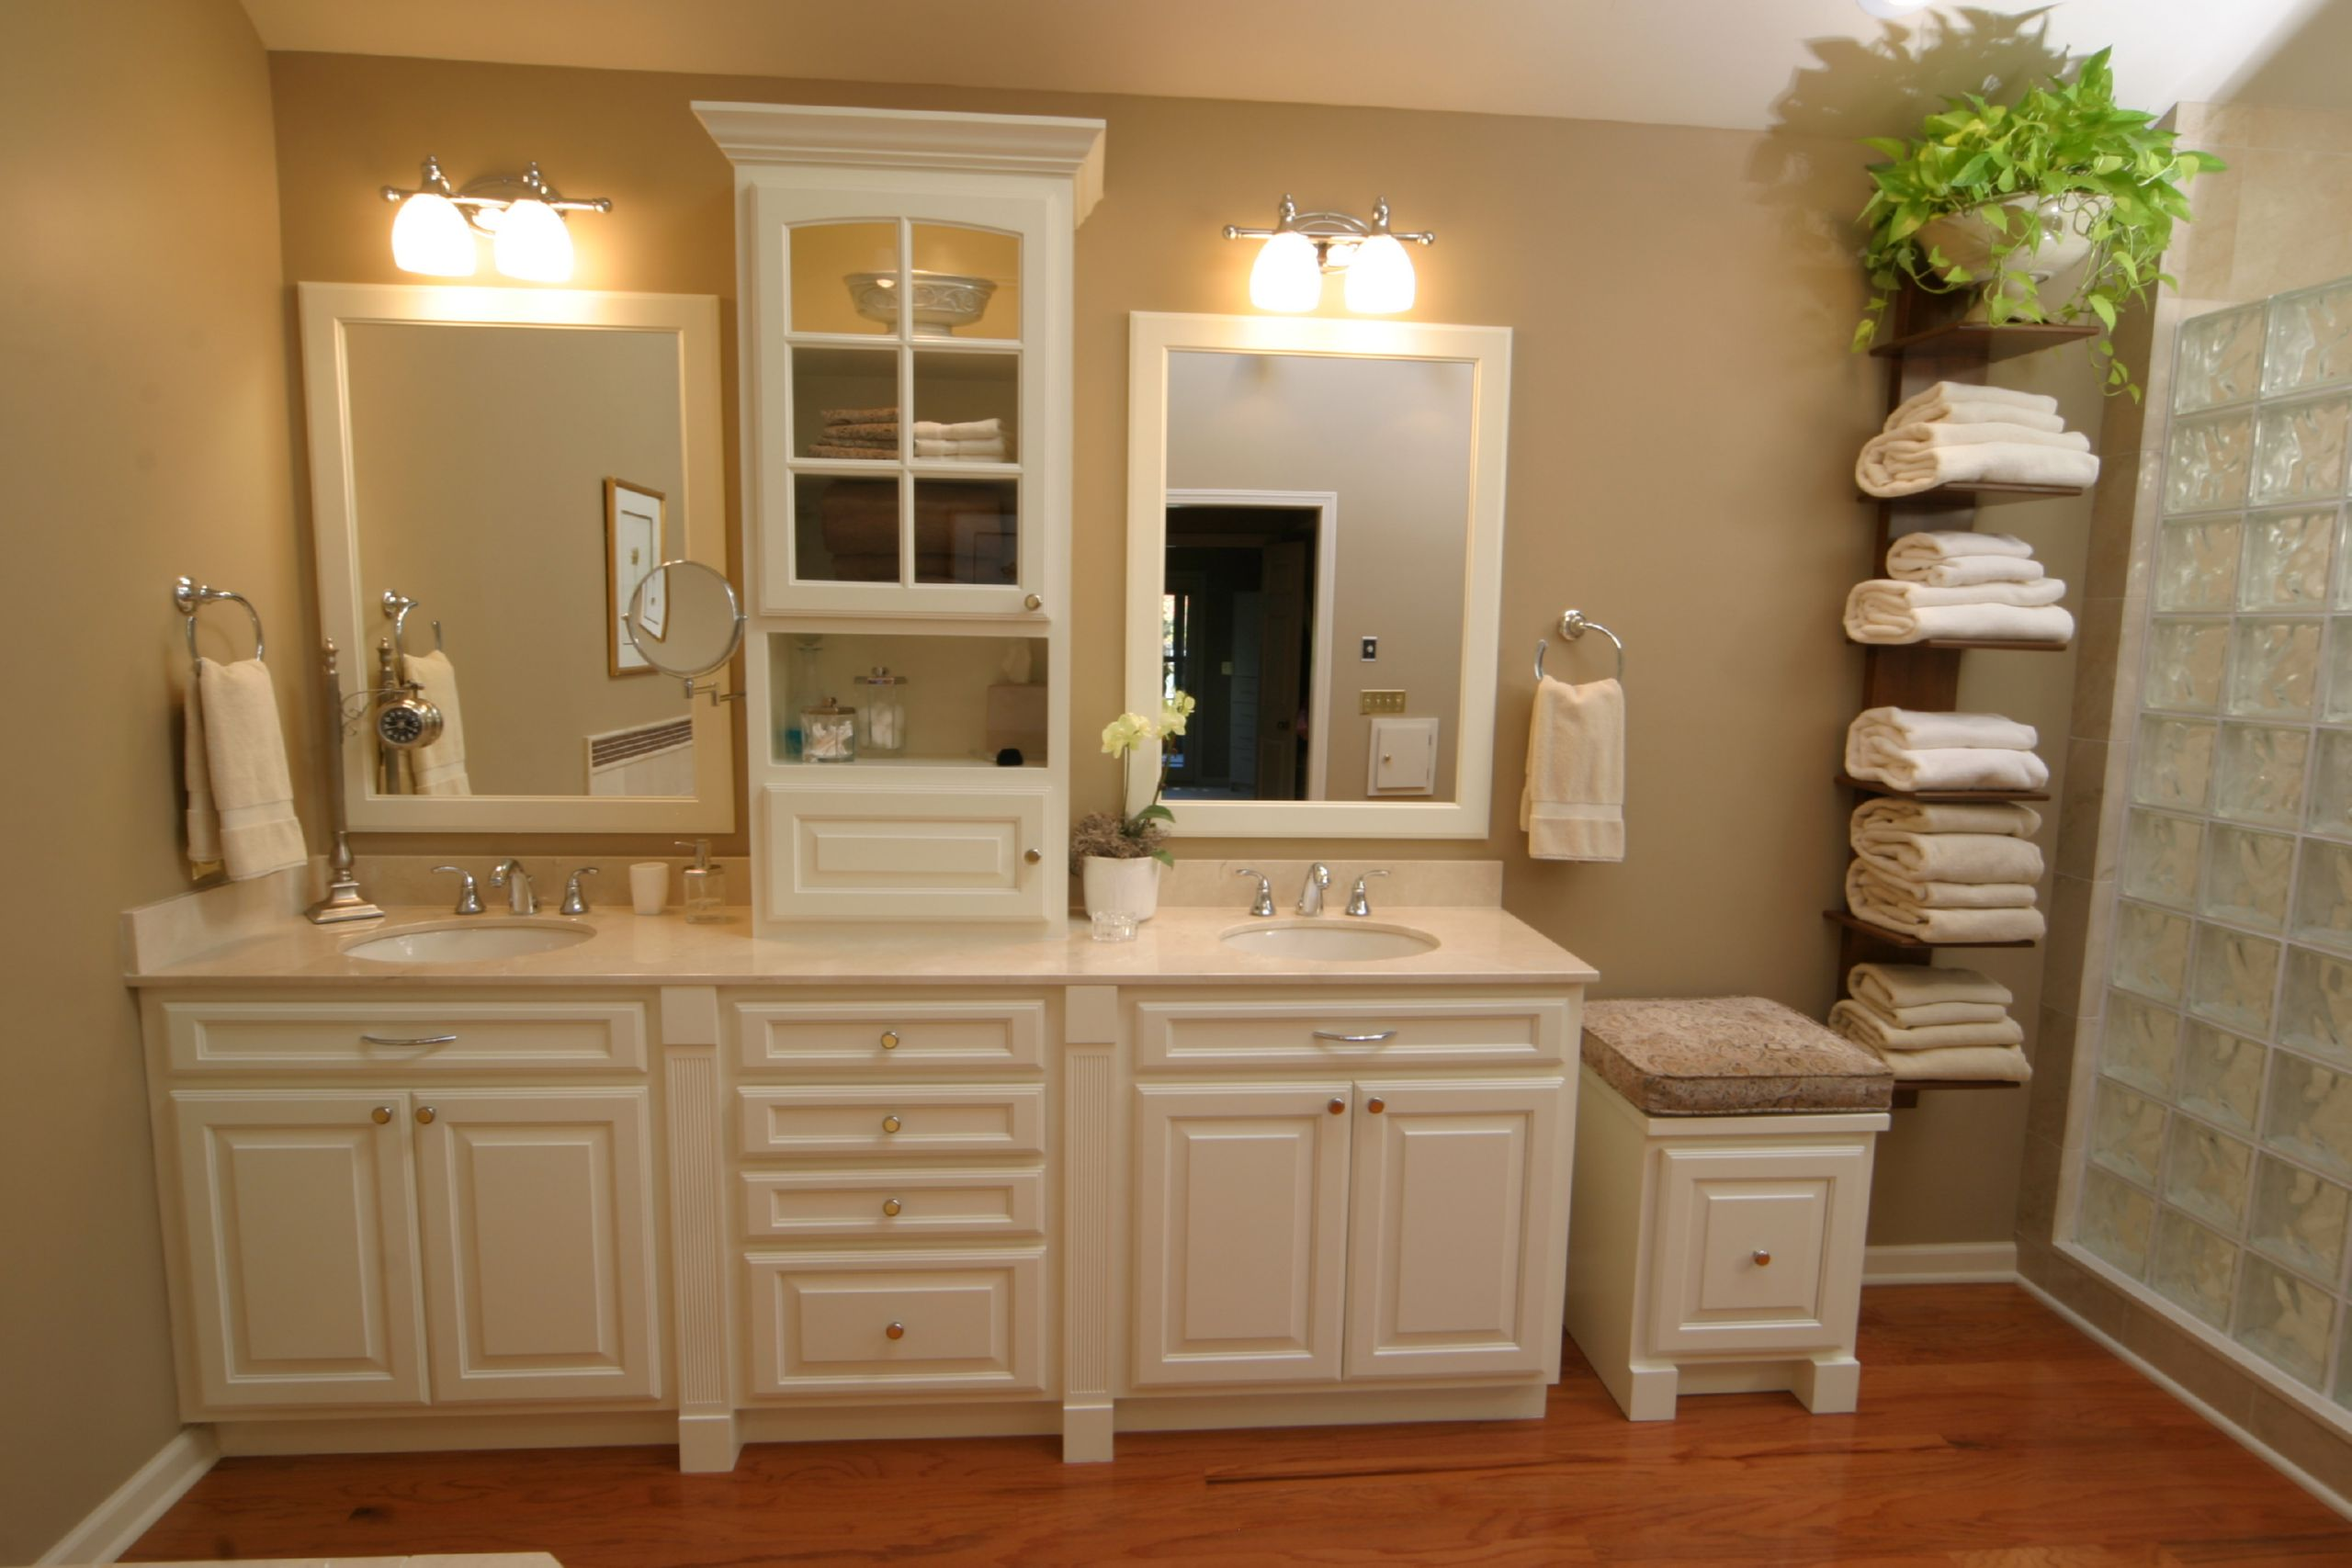 Bathroom remodeling bath remodel contractor for Bathroom kitchen remodel